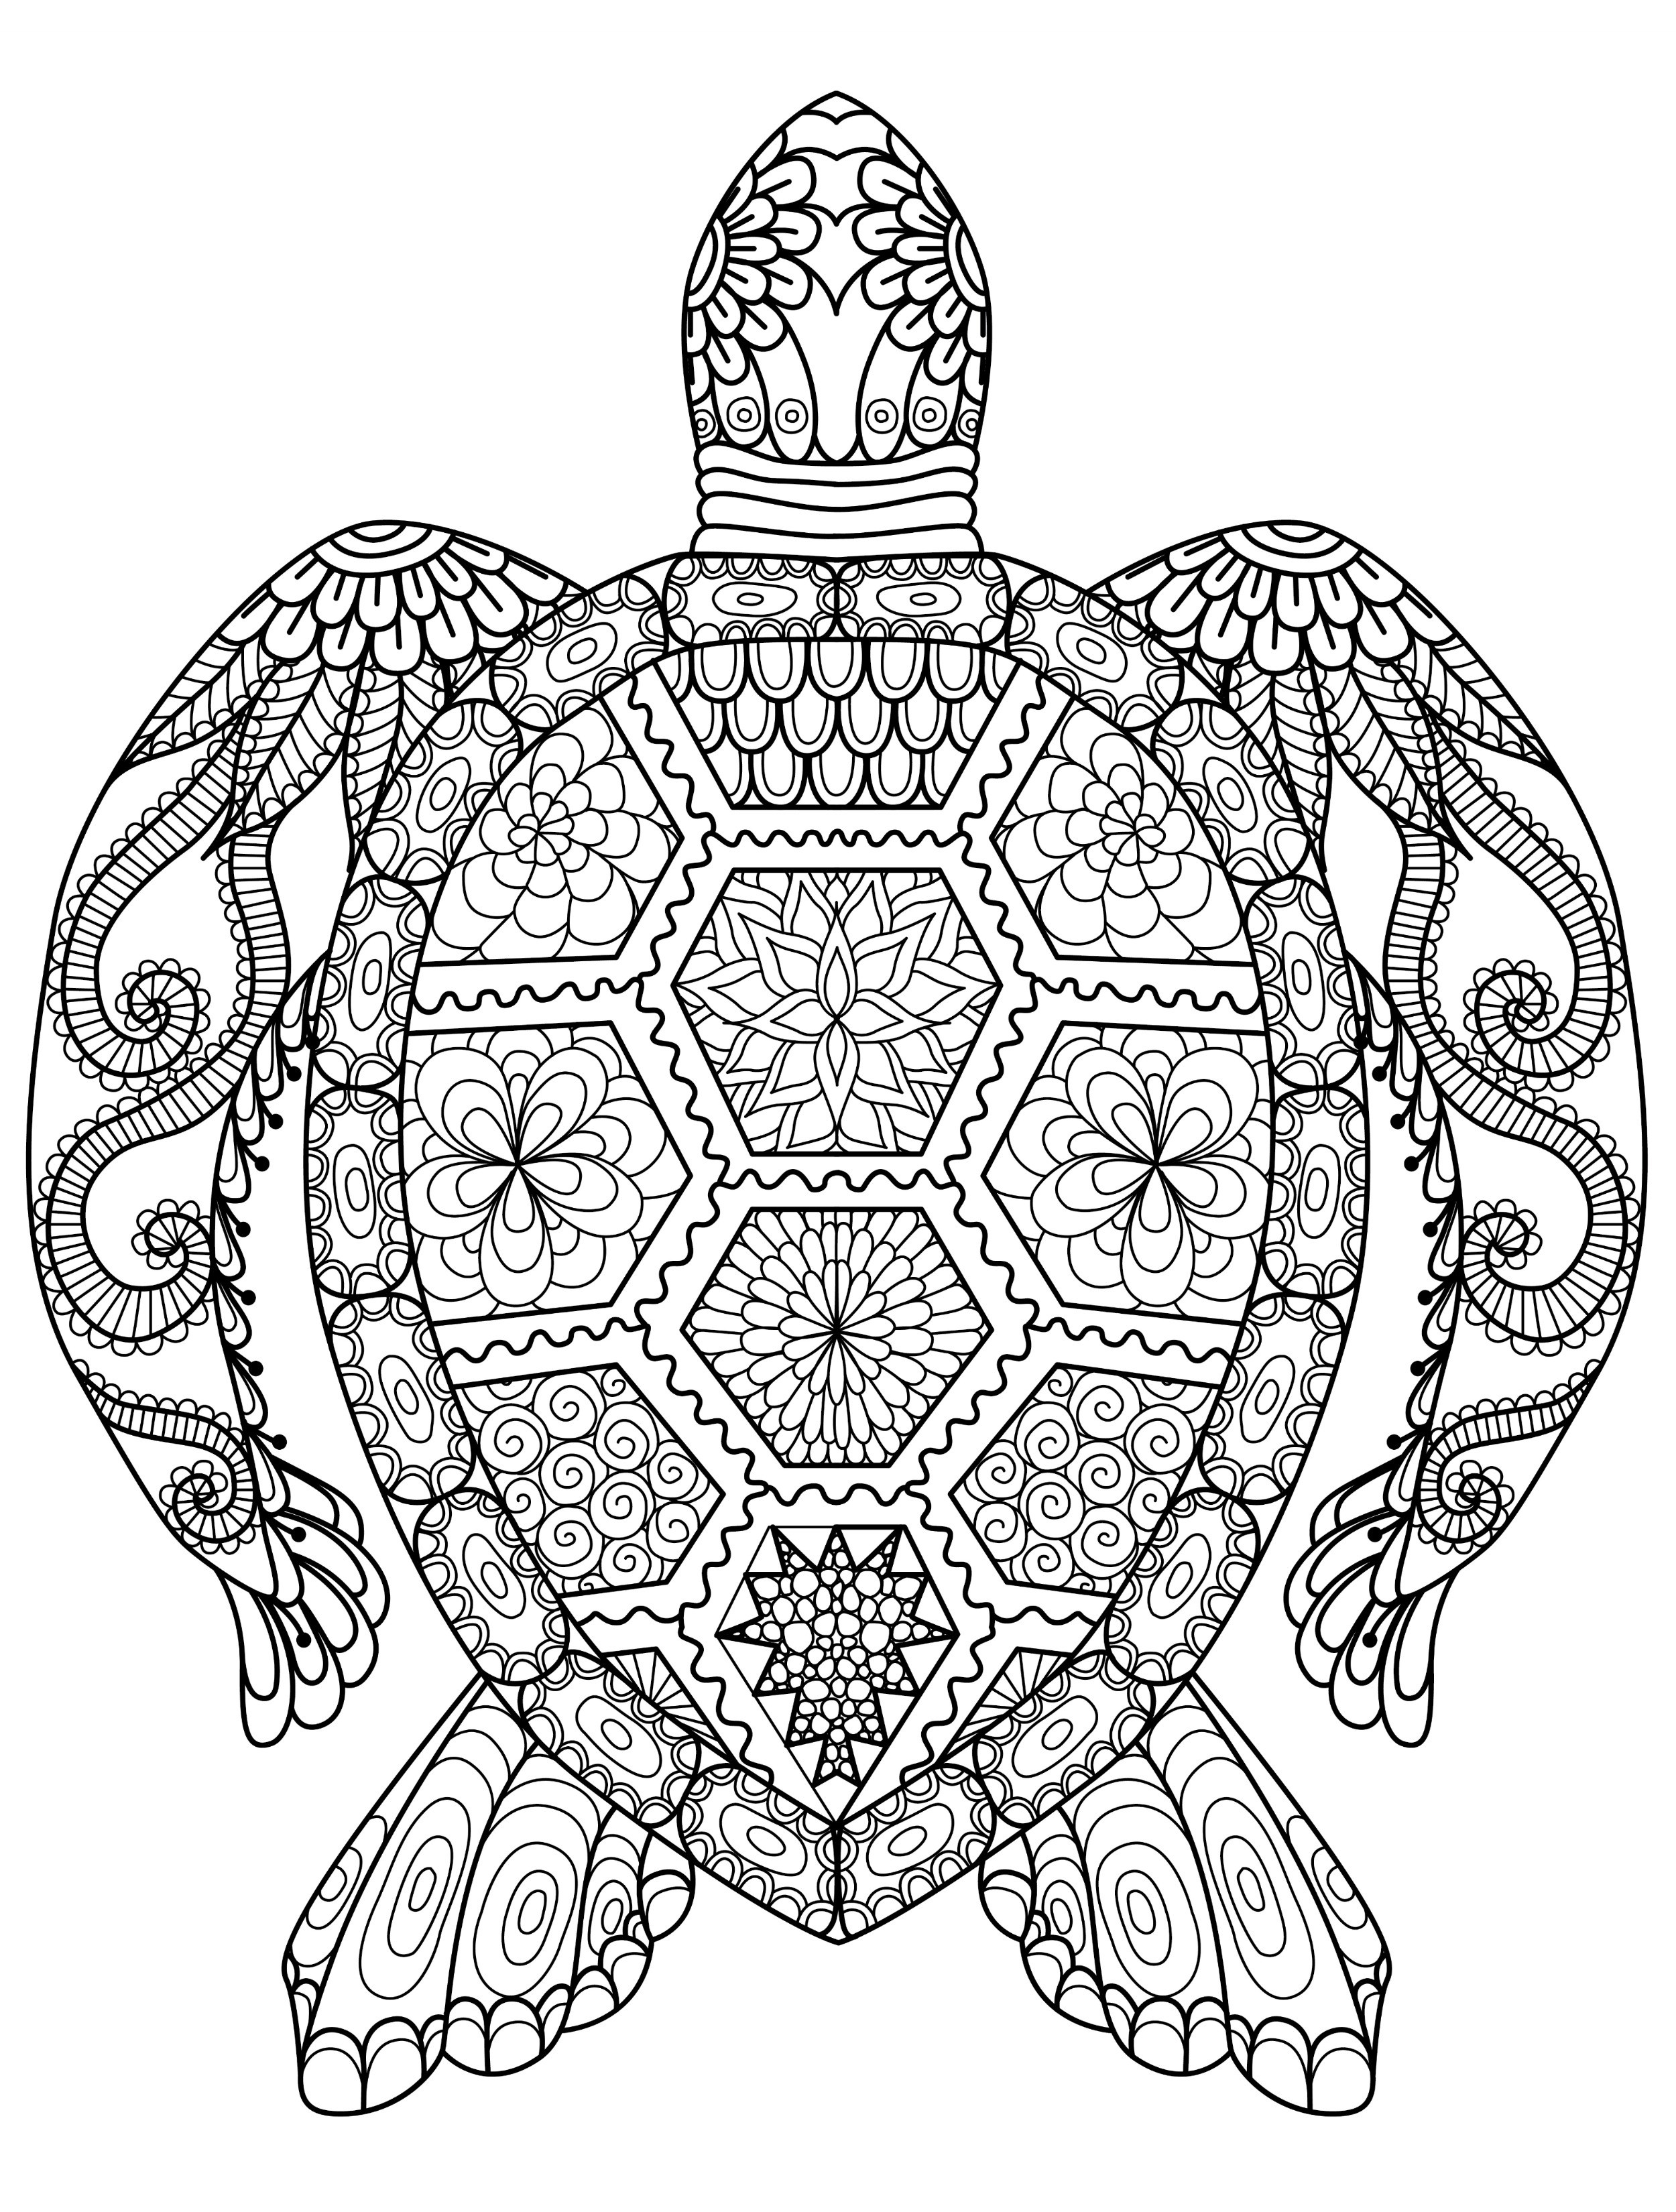 coloring pages for kids hard printable difficult coloring pages coloring home hard kids for coloring pages